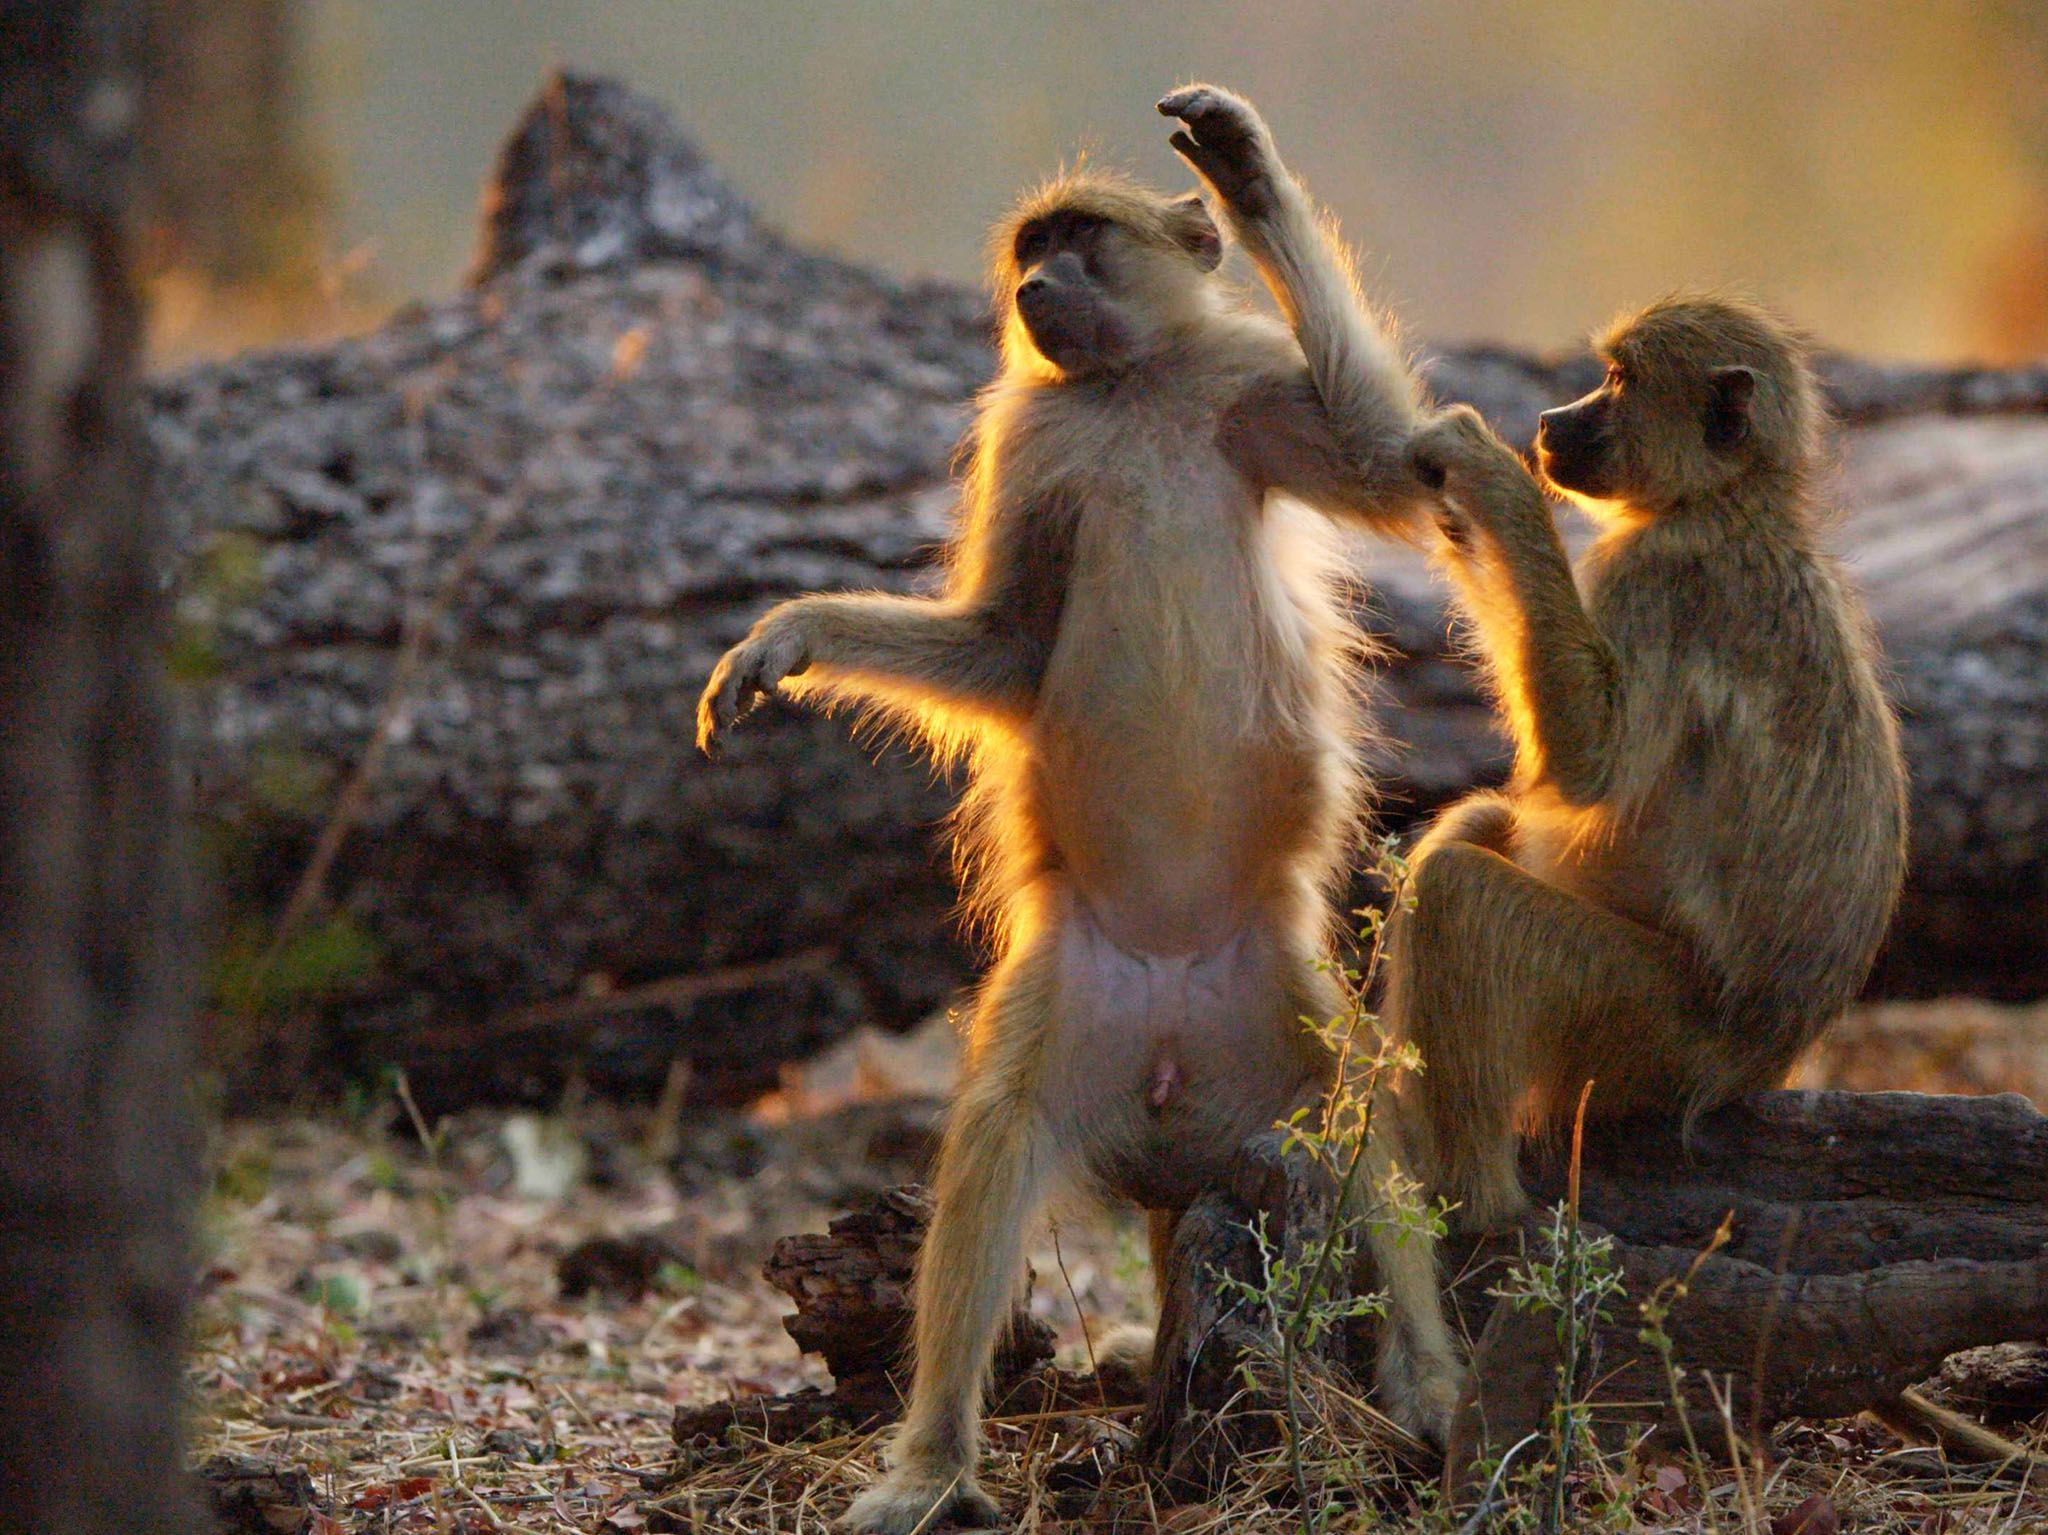 Baboons grooming one another. This image is from Africa's Hunters. [Photo of the day - مارس 2020]